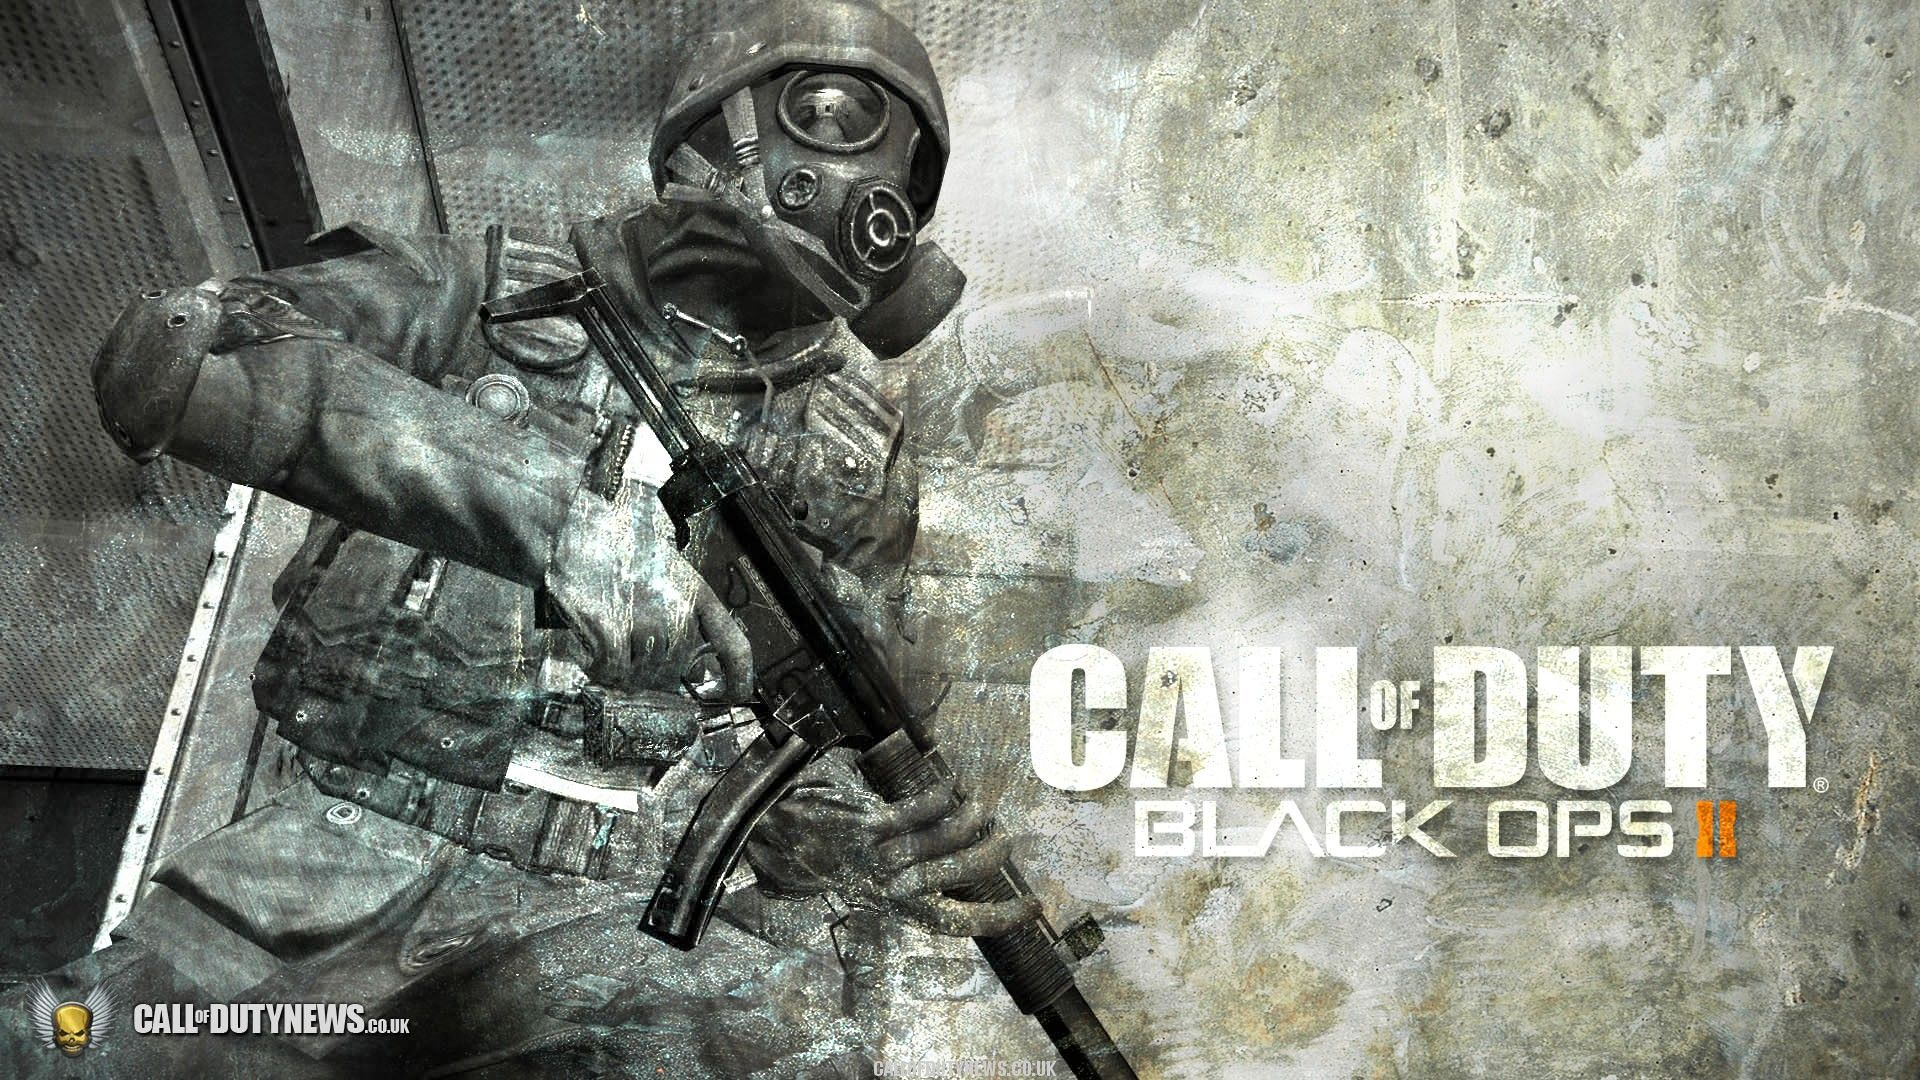 Pin By James T On Black Ops 1 And Black Ops 2 Black Ops Call Of Duty Black Wallpaper